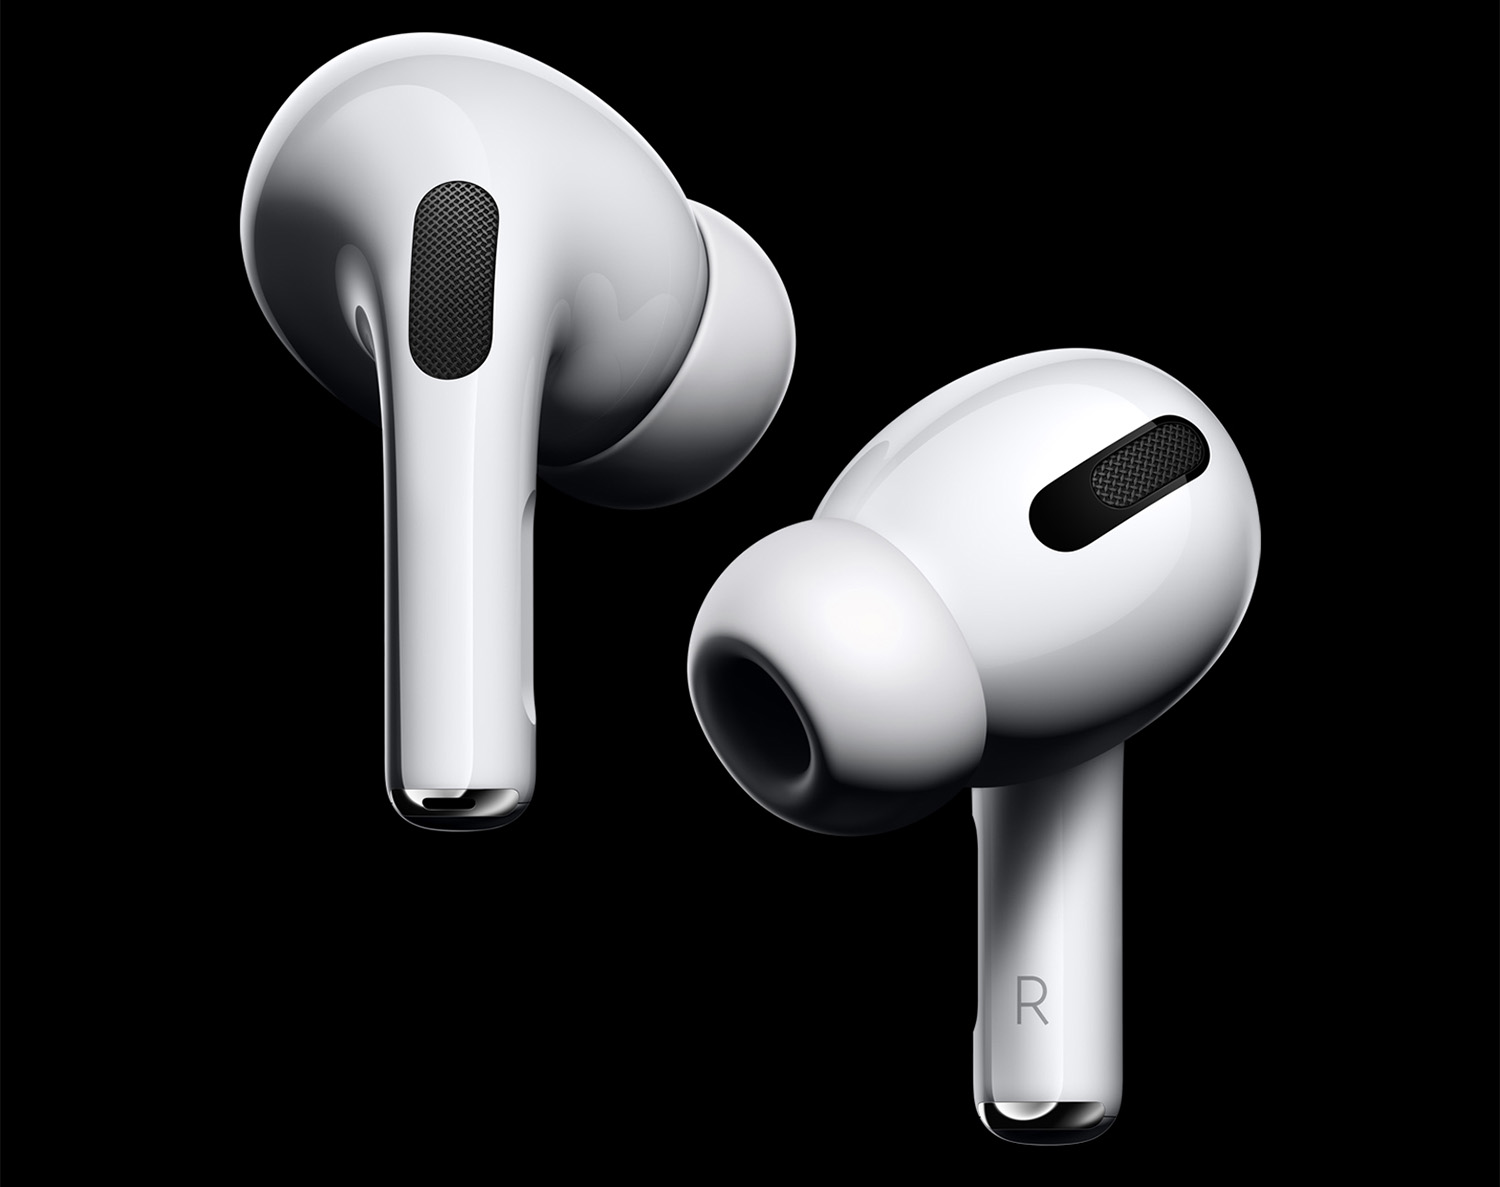 Airpods Pro Reach Lowest Price Ever For Black Friday 2020 Available For 169 00